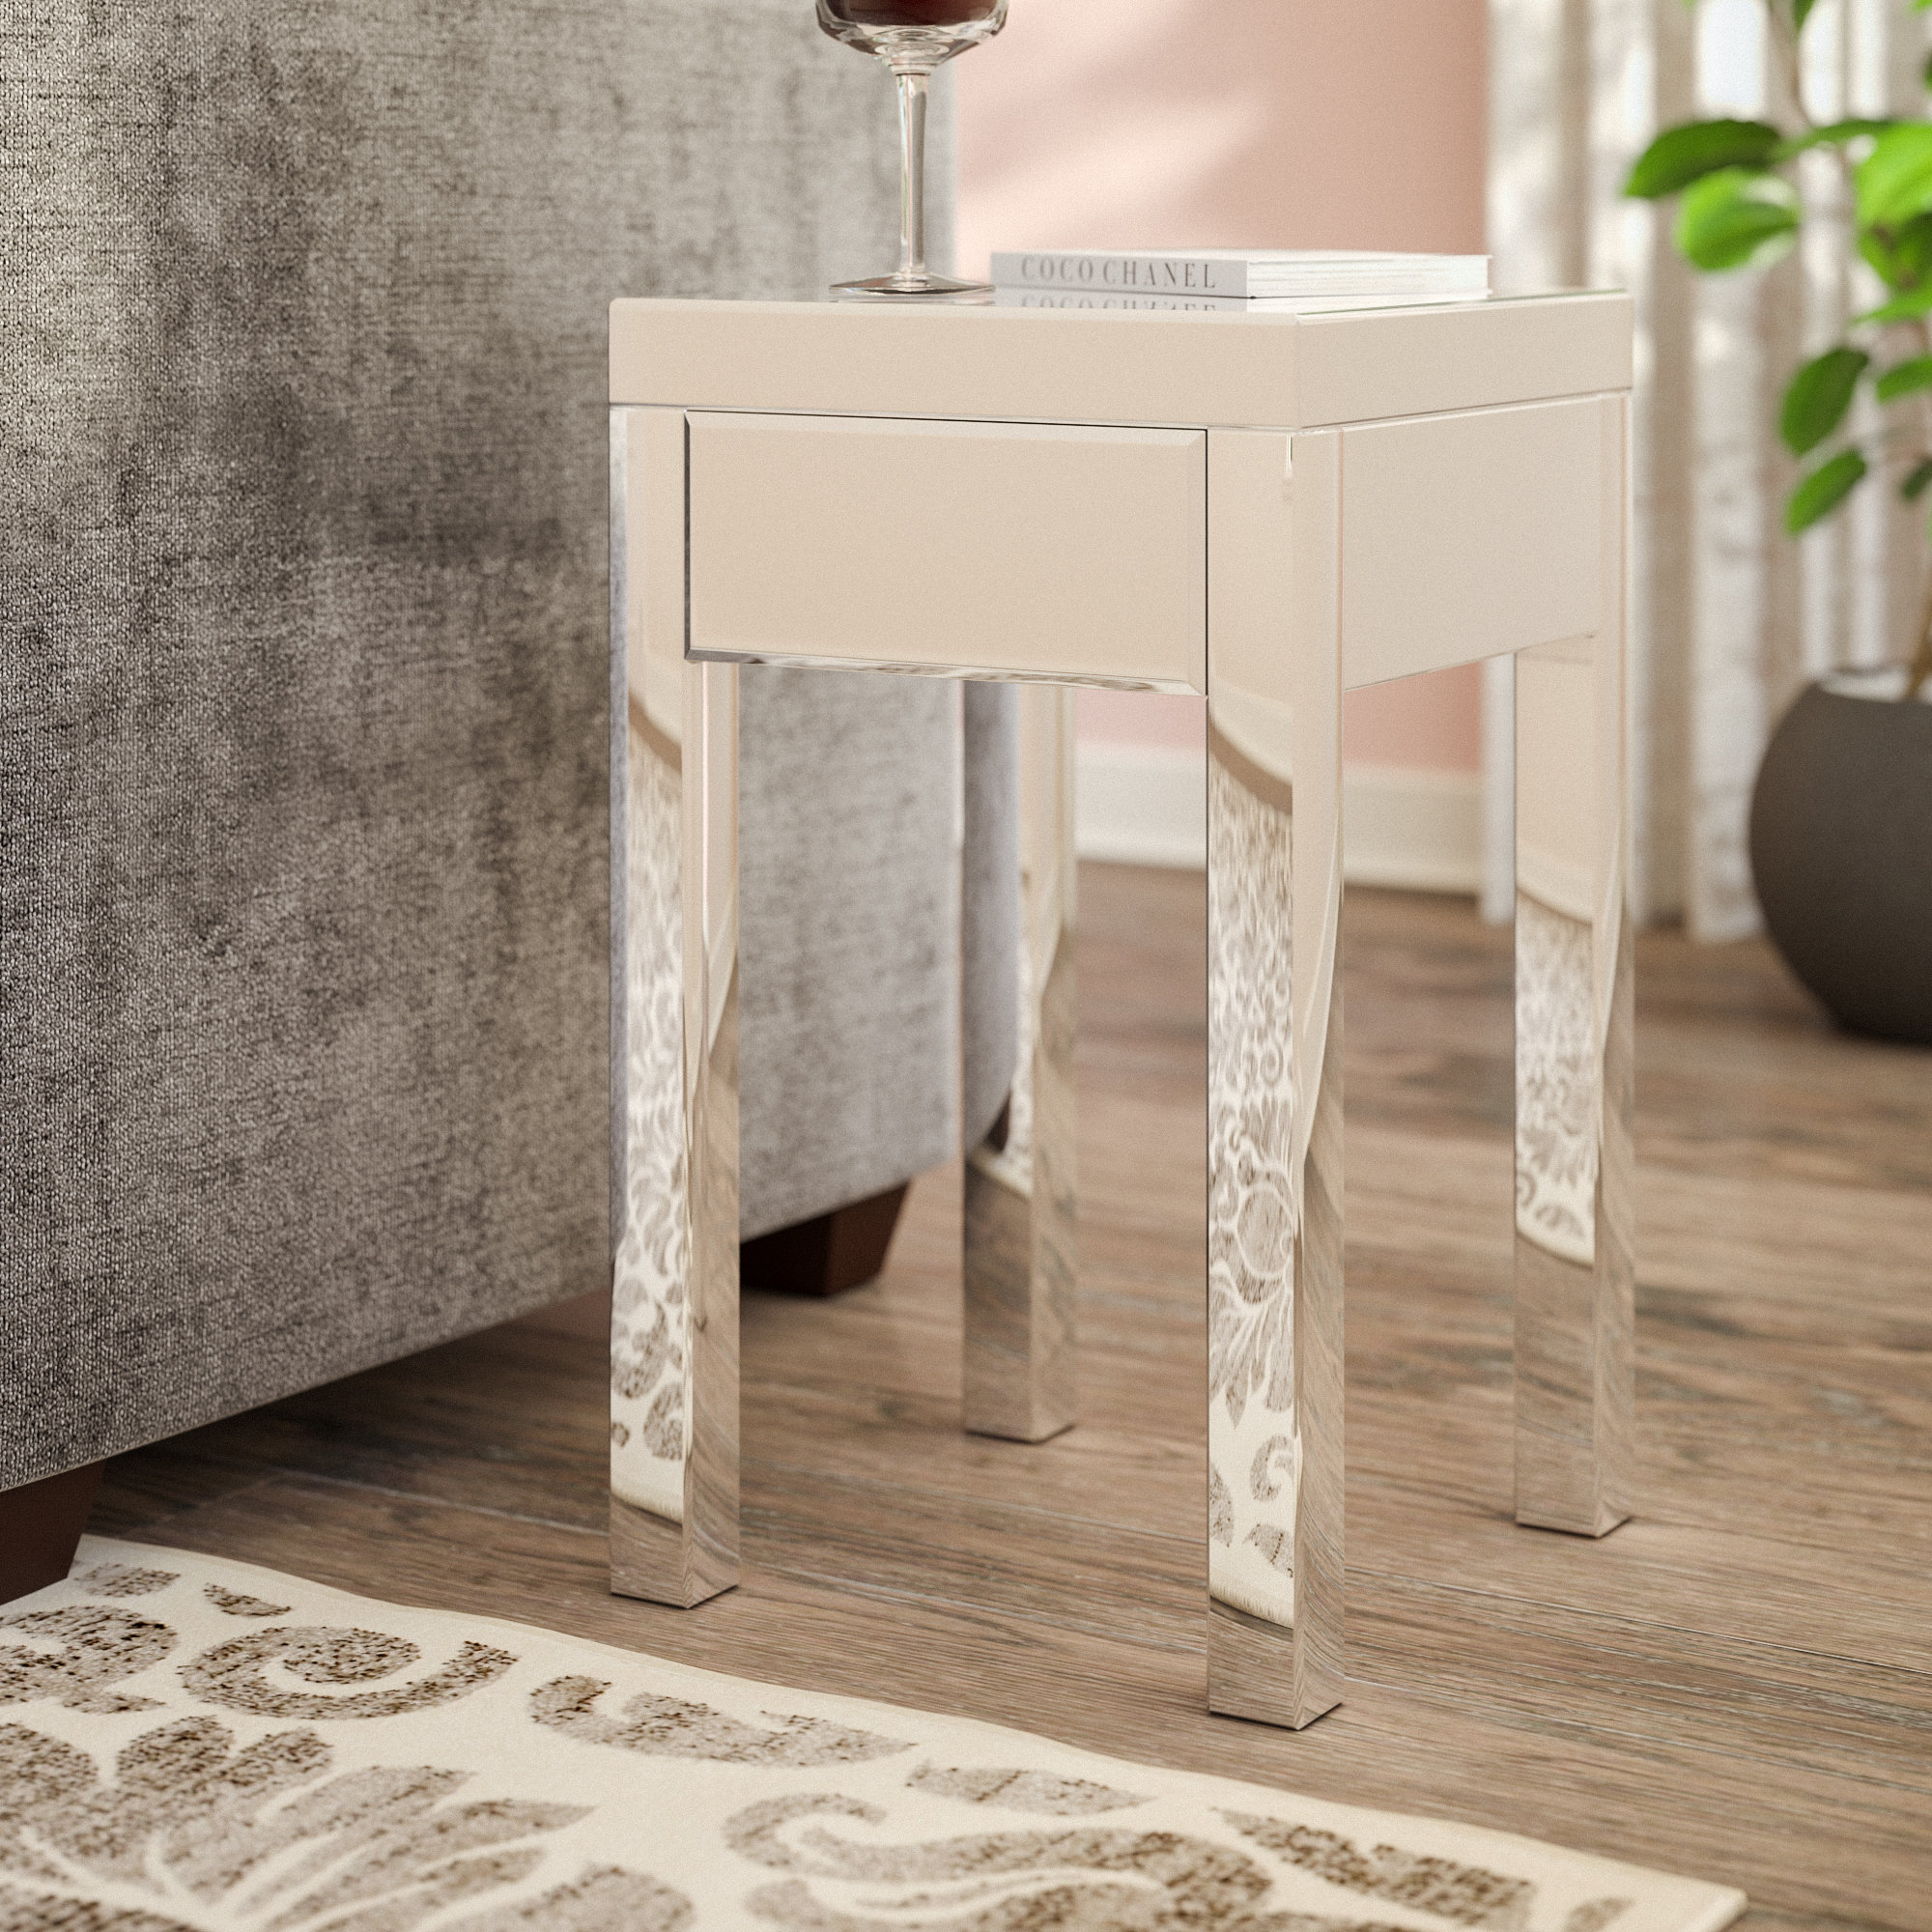 small mirrored accent table keels end with storage drawer bar height dining chairs nesting coffee tables art deco tiffany lamp outdoor patio clearance bedroom night stands marble